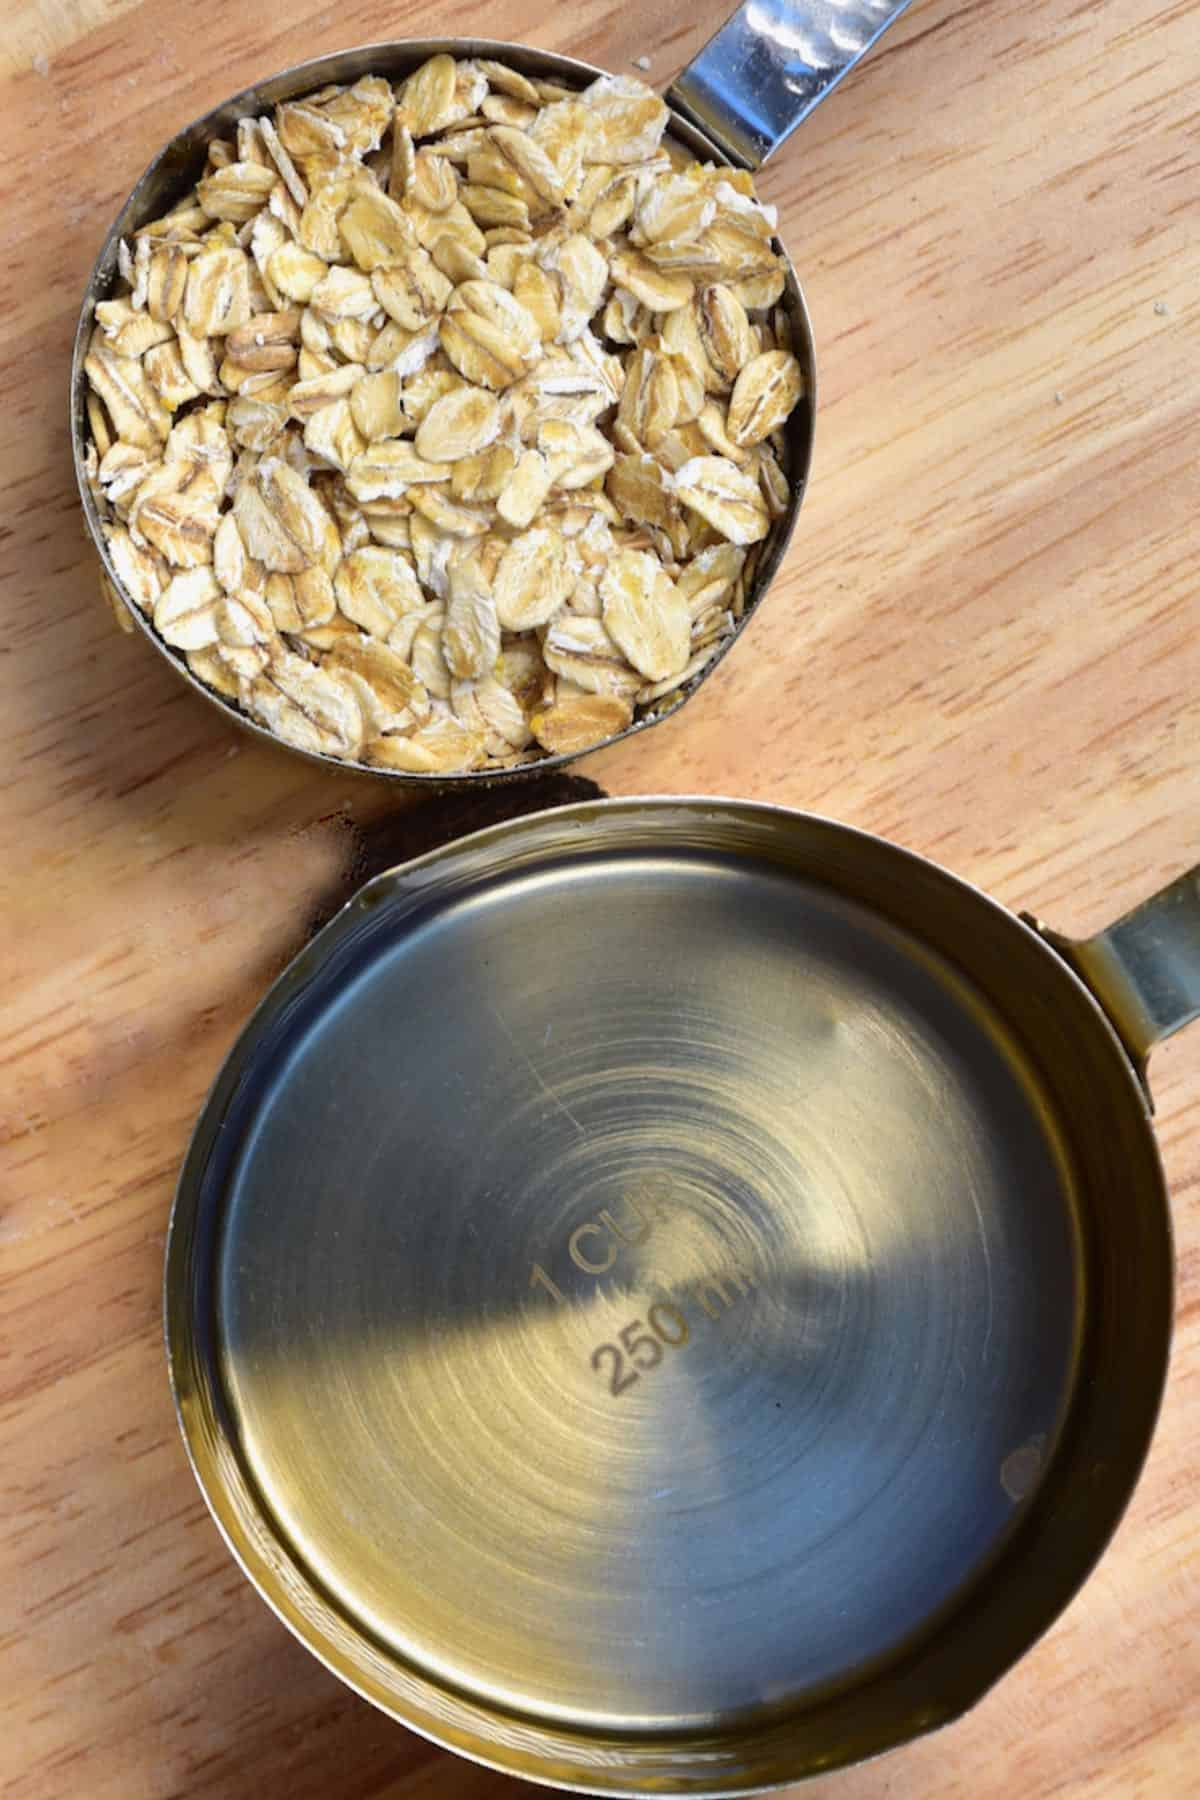 Oats and water